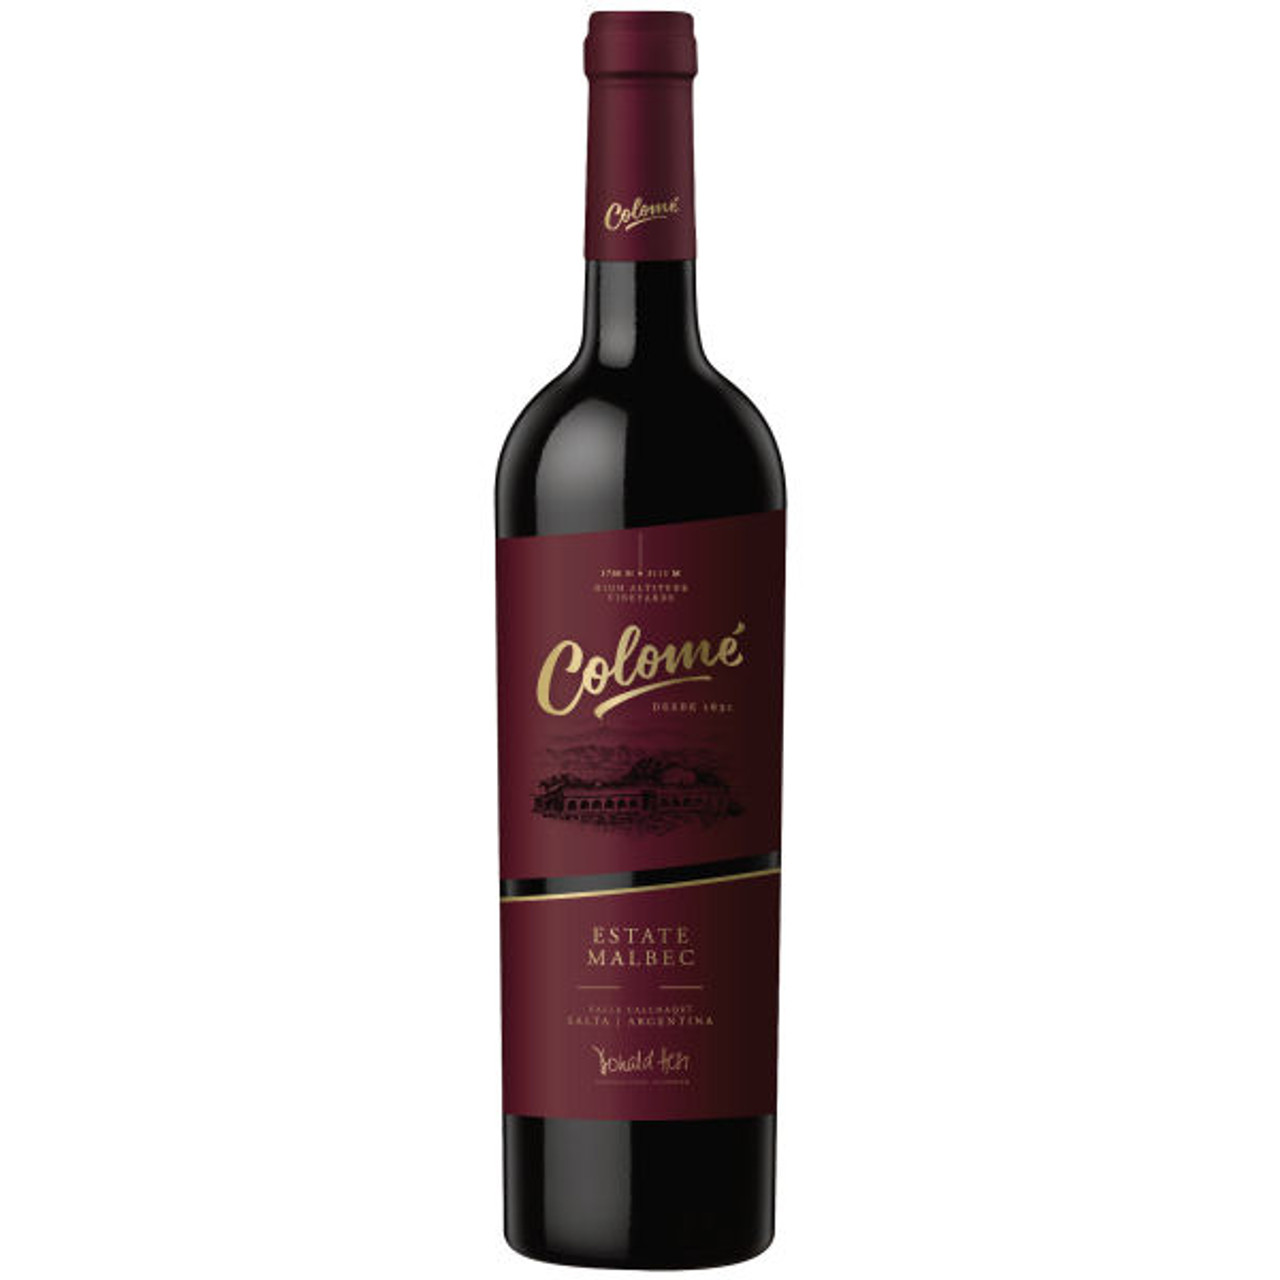 Bodega Colome Estate Malbec